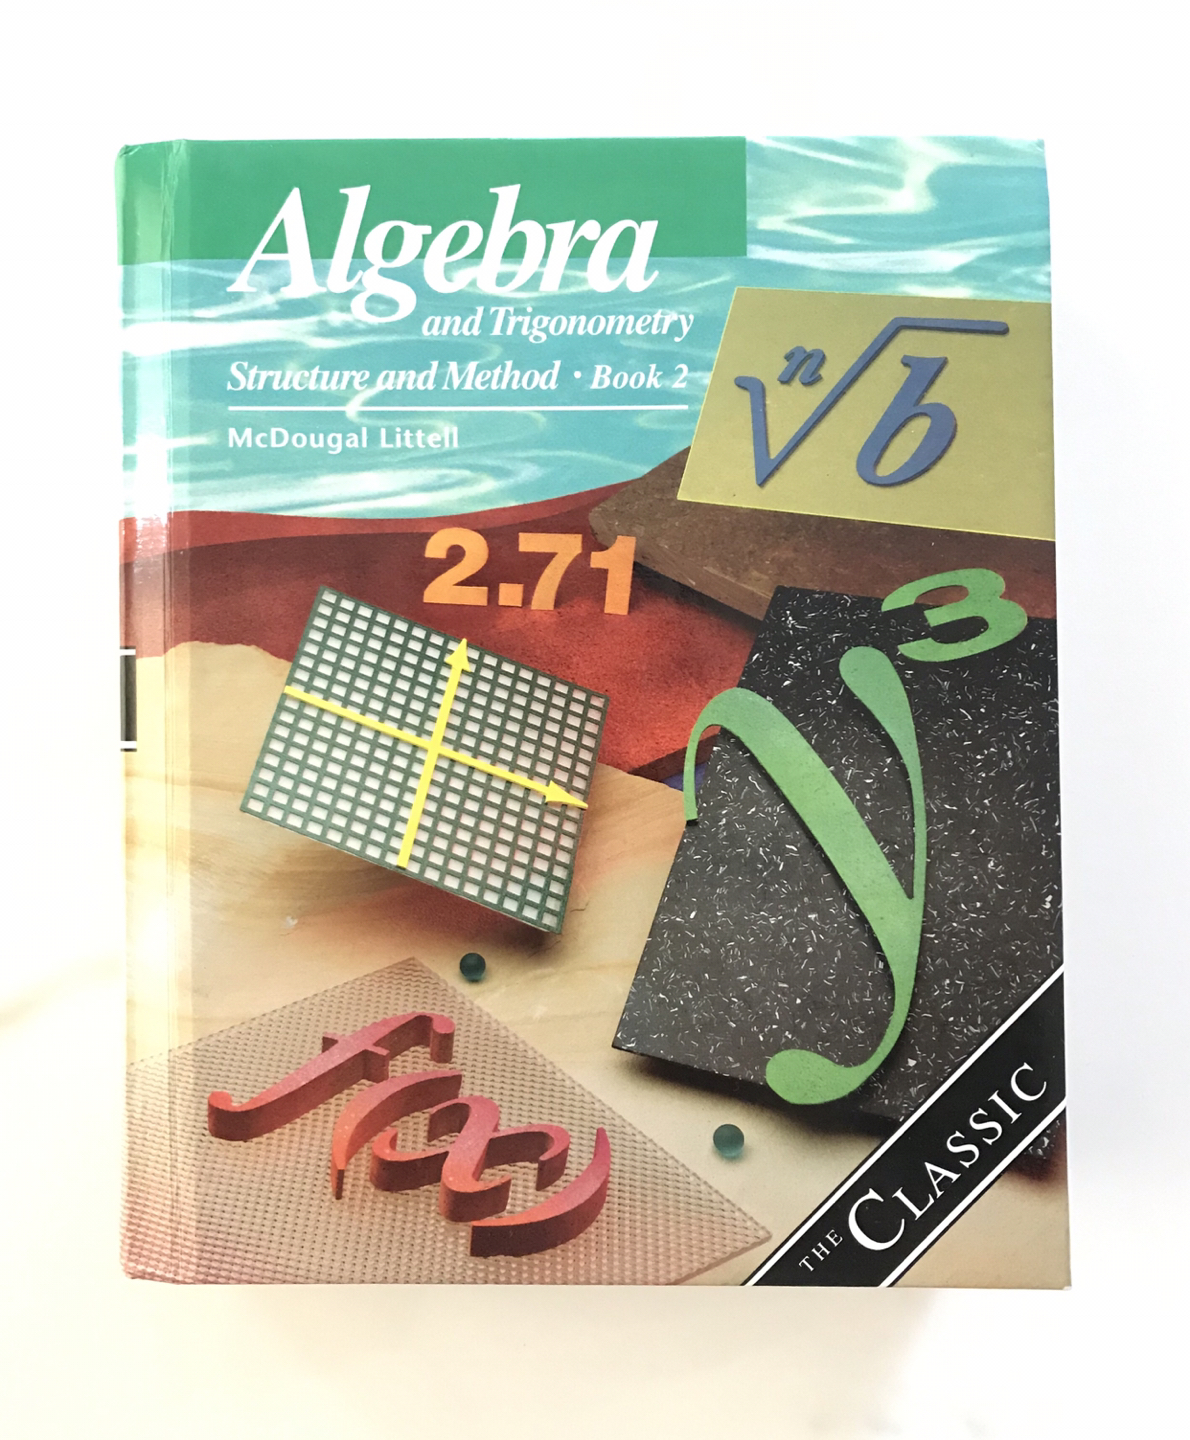 Algebra and Trigonometry Structure and Method Book2